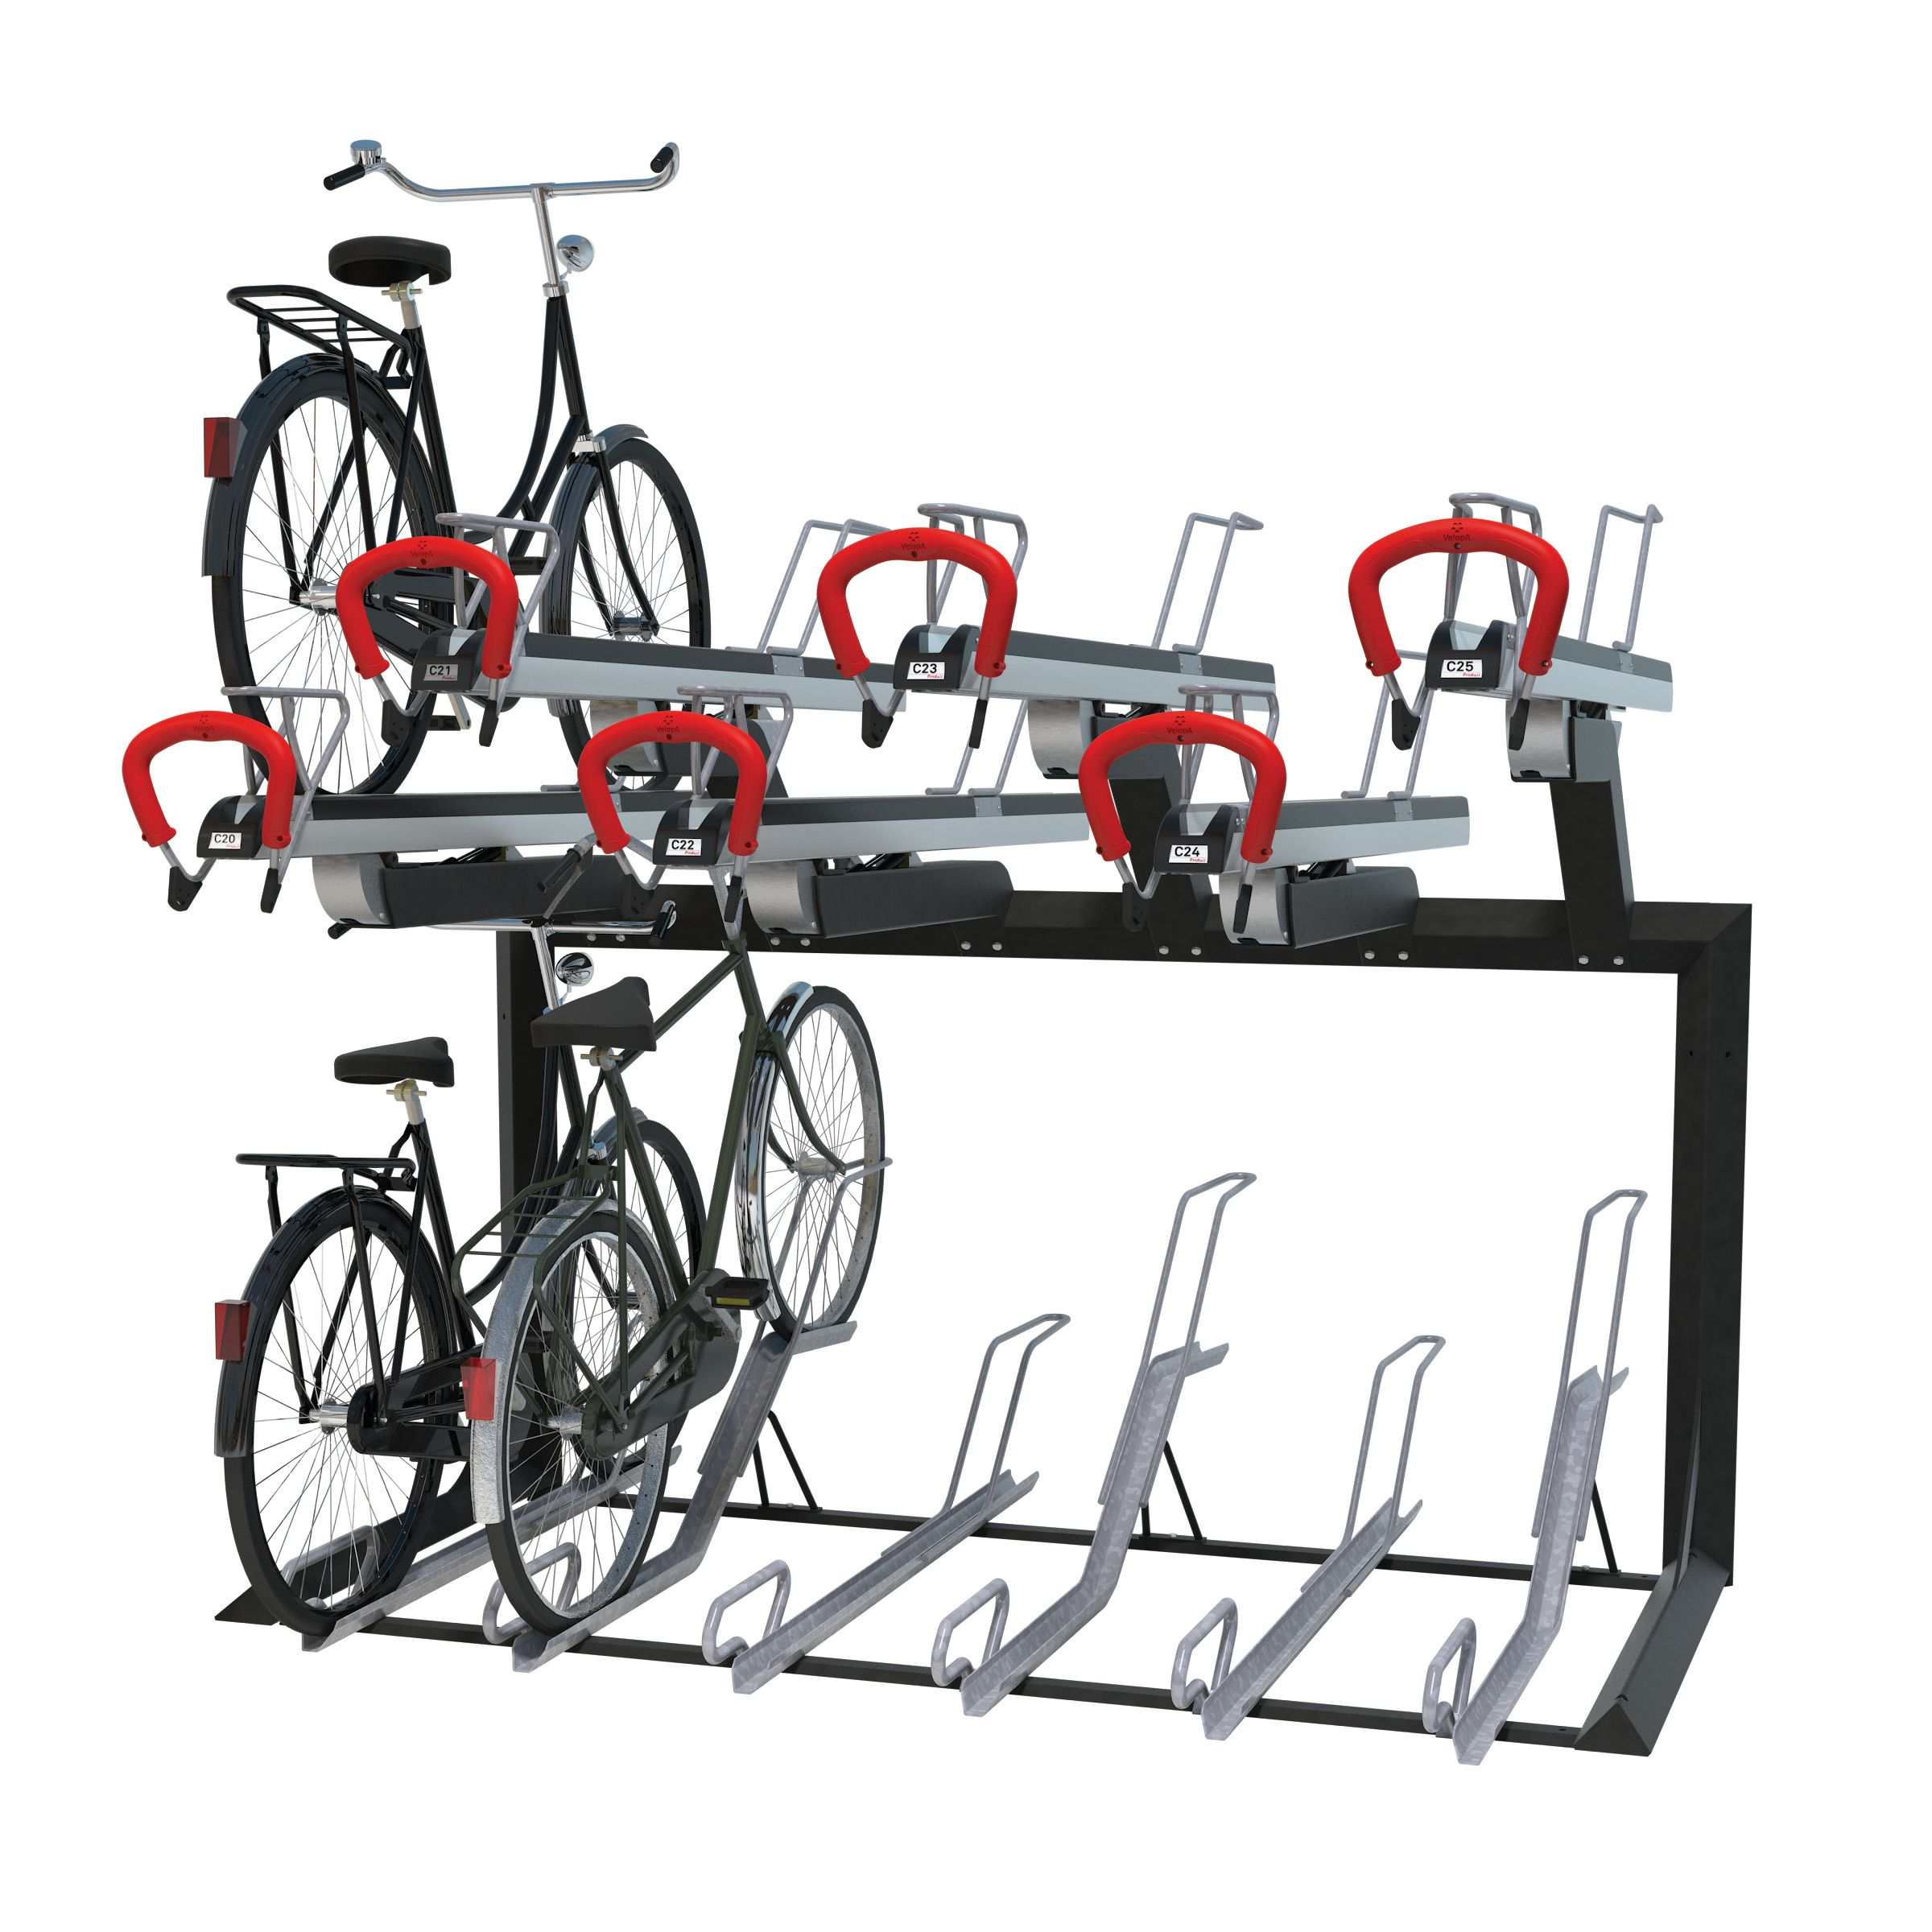 Easylift+ Bicycle Parking System